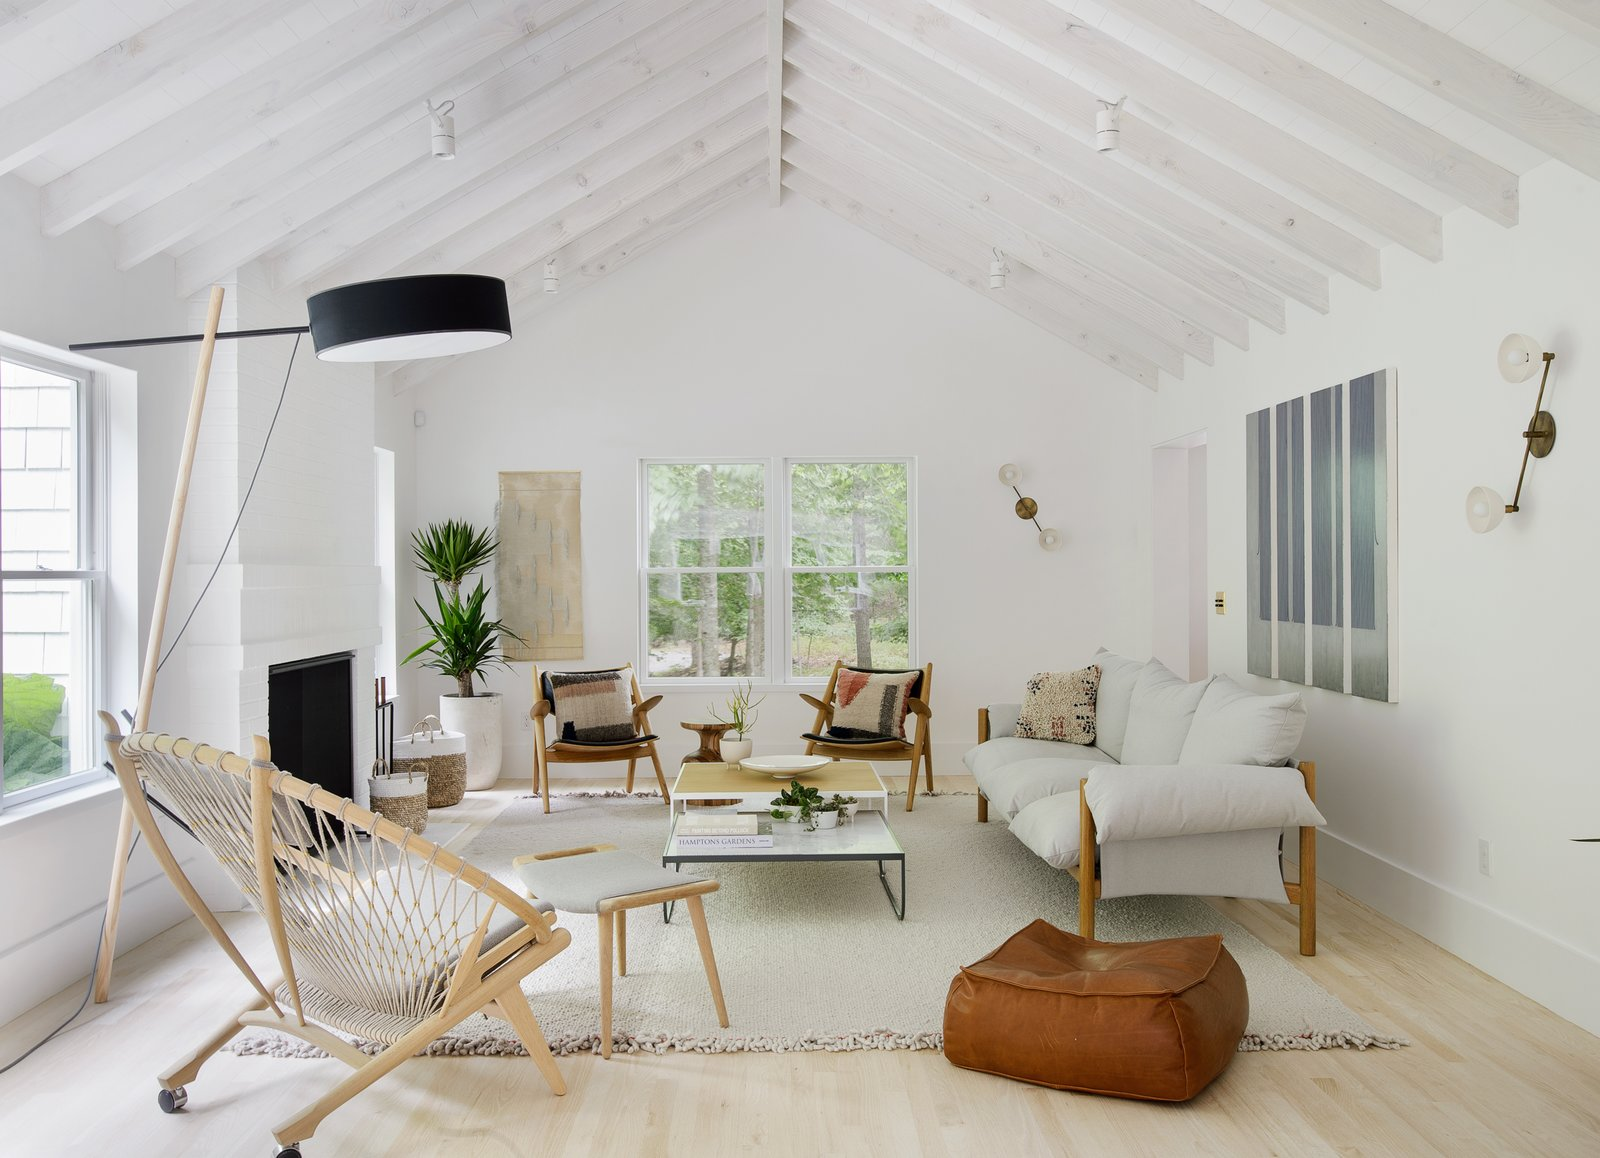 Living Room, Ceiling Lighting, Standard Layout Fireplace, Wall Lighting, Floor Lighting, Chair, Lamps, Ottomans, Rug Floor, Sofa, and Light Hardwood Floor Taking cues from their style-conscious clients, Jessica Helgerson Interior Design transformed an Amagansett home into a light-filled, Scandinavian-inspired getaway.  Photo 1 of 5 in How Much Should You Spend on a Living Room Sofa? from A Hamptons Beach Retreat Gets a Scandinavian-Style Makeover